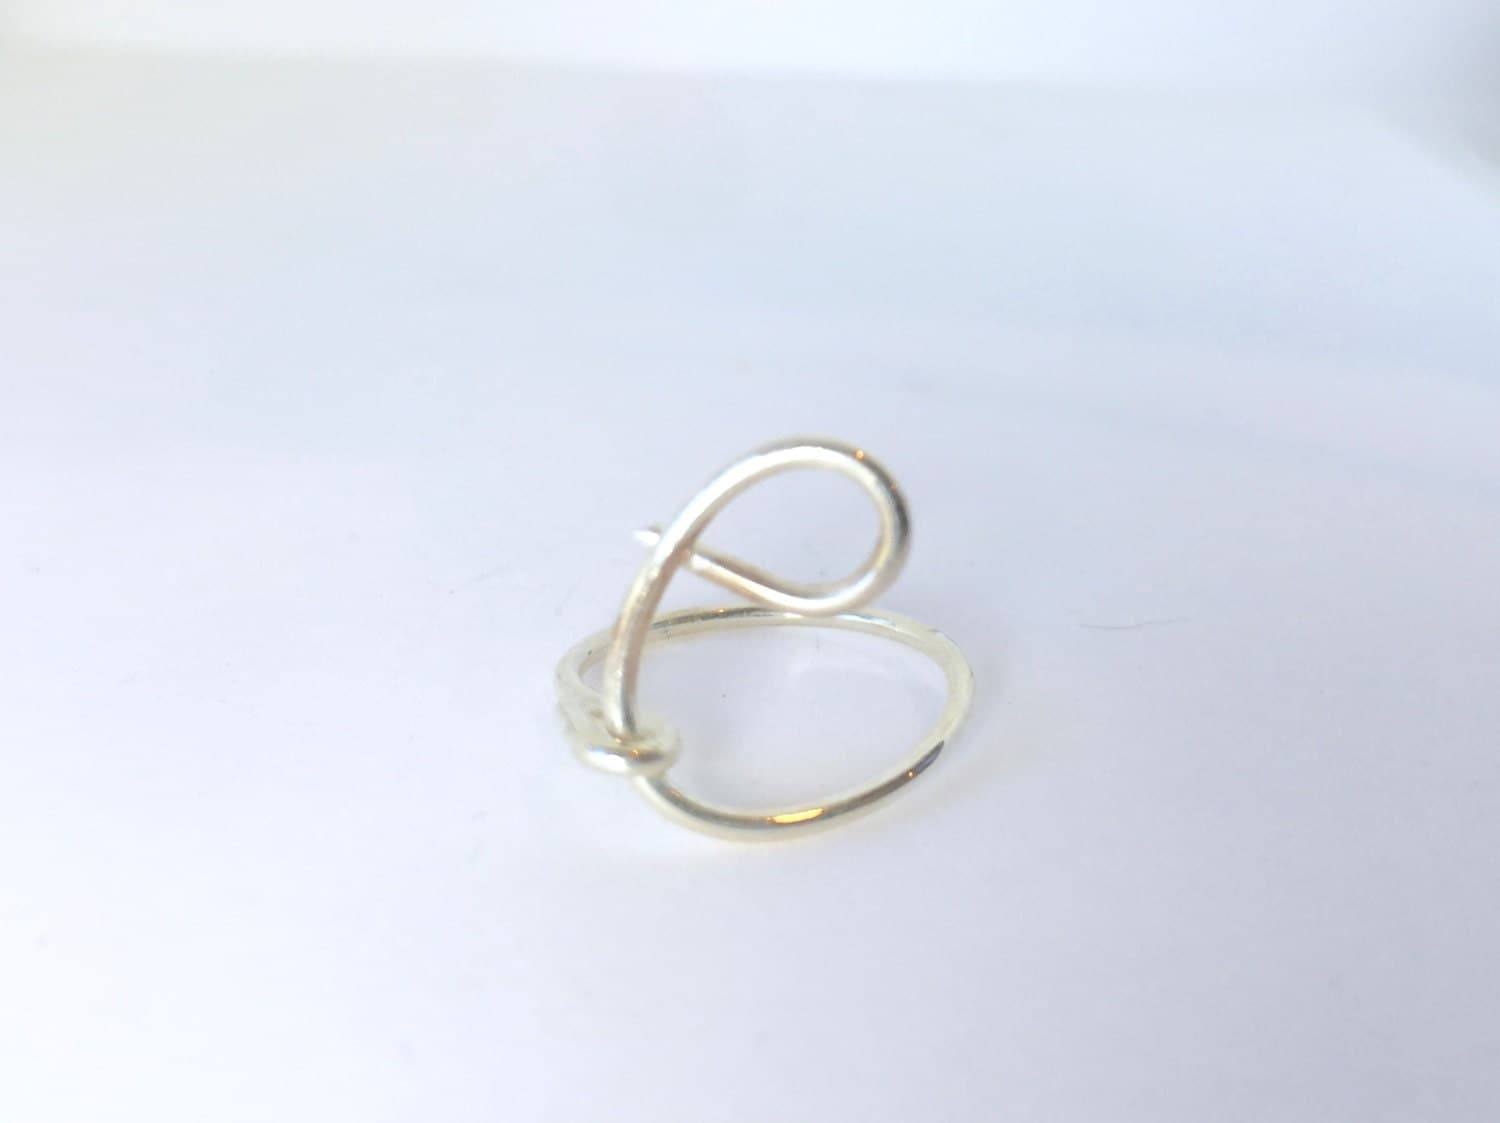 letter c ring sterling silver size 6 lilyb444 etsy With letter c ring